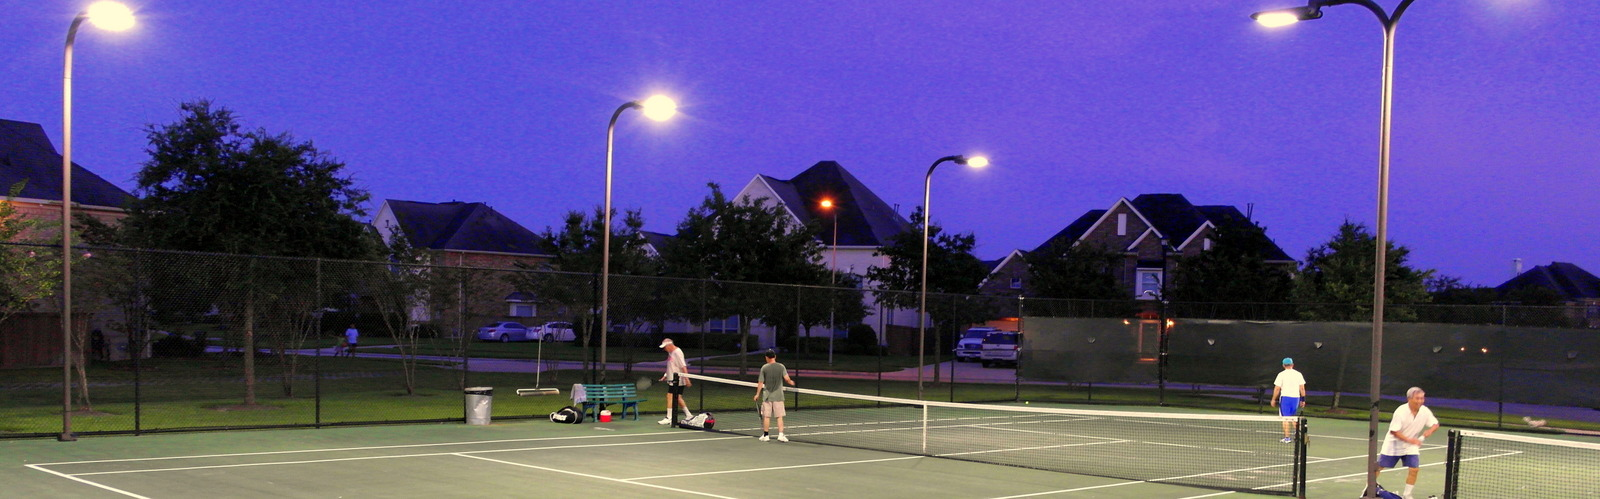 LED Tennis Court Lighting in Houston, Texas